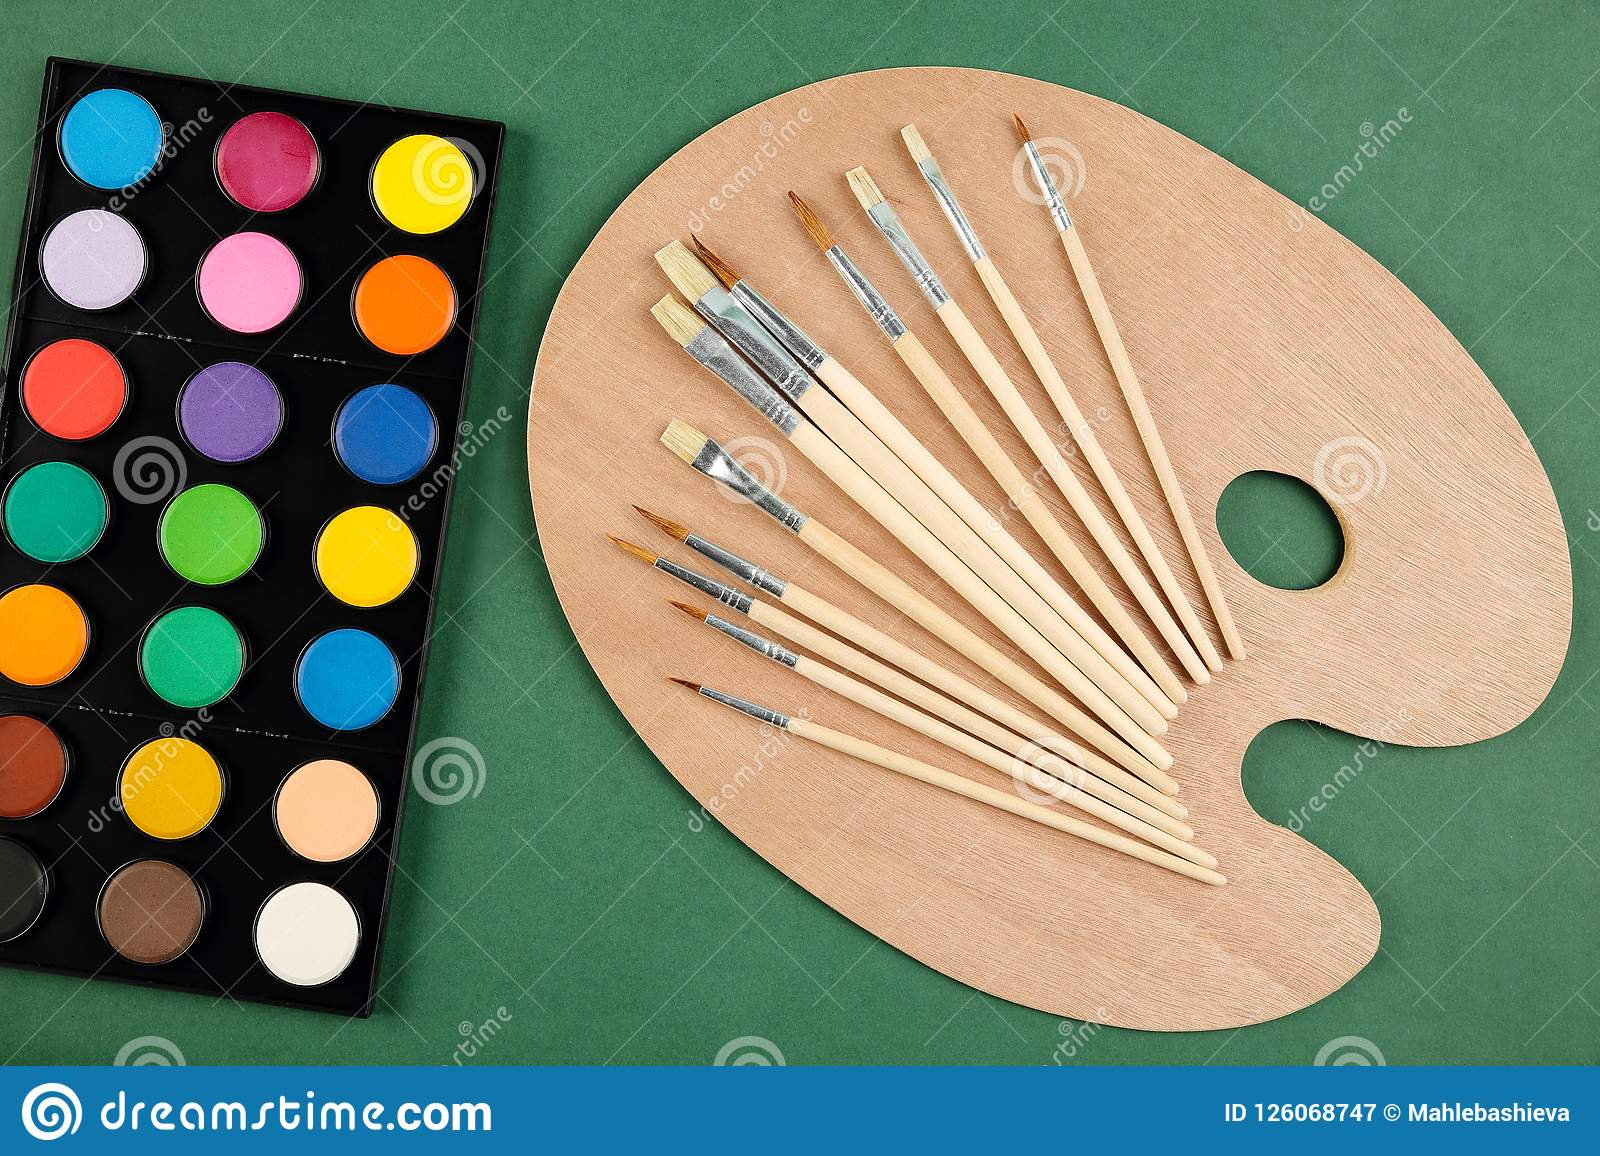 Top View Of A Set Of Watercolors Wooden Palette And Different Types Of Paint Brushes On A Dark Green Background Art Craft Scho Stock Image Image Of Artwork Paintbrush 126068747